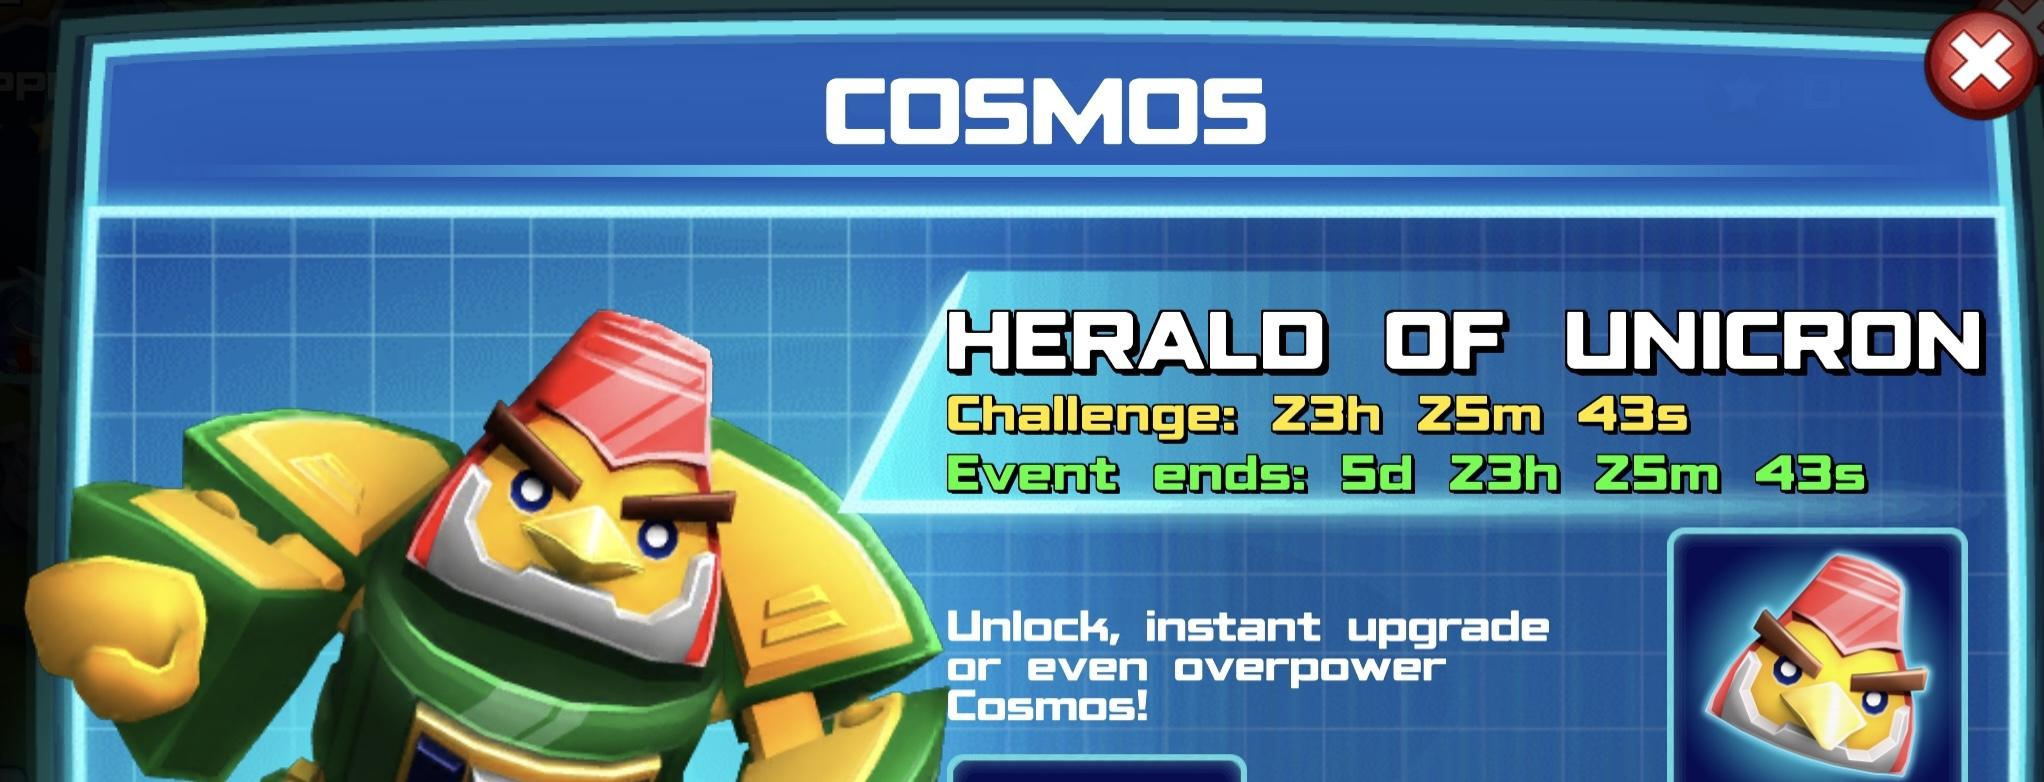 The event banner for Cosmos